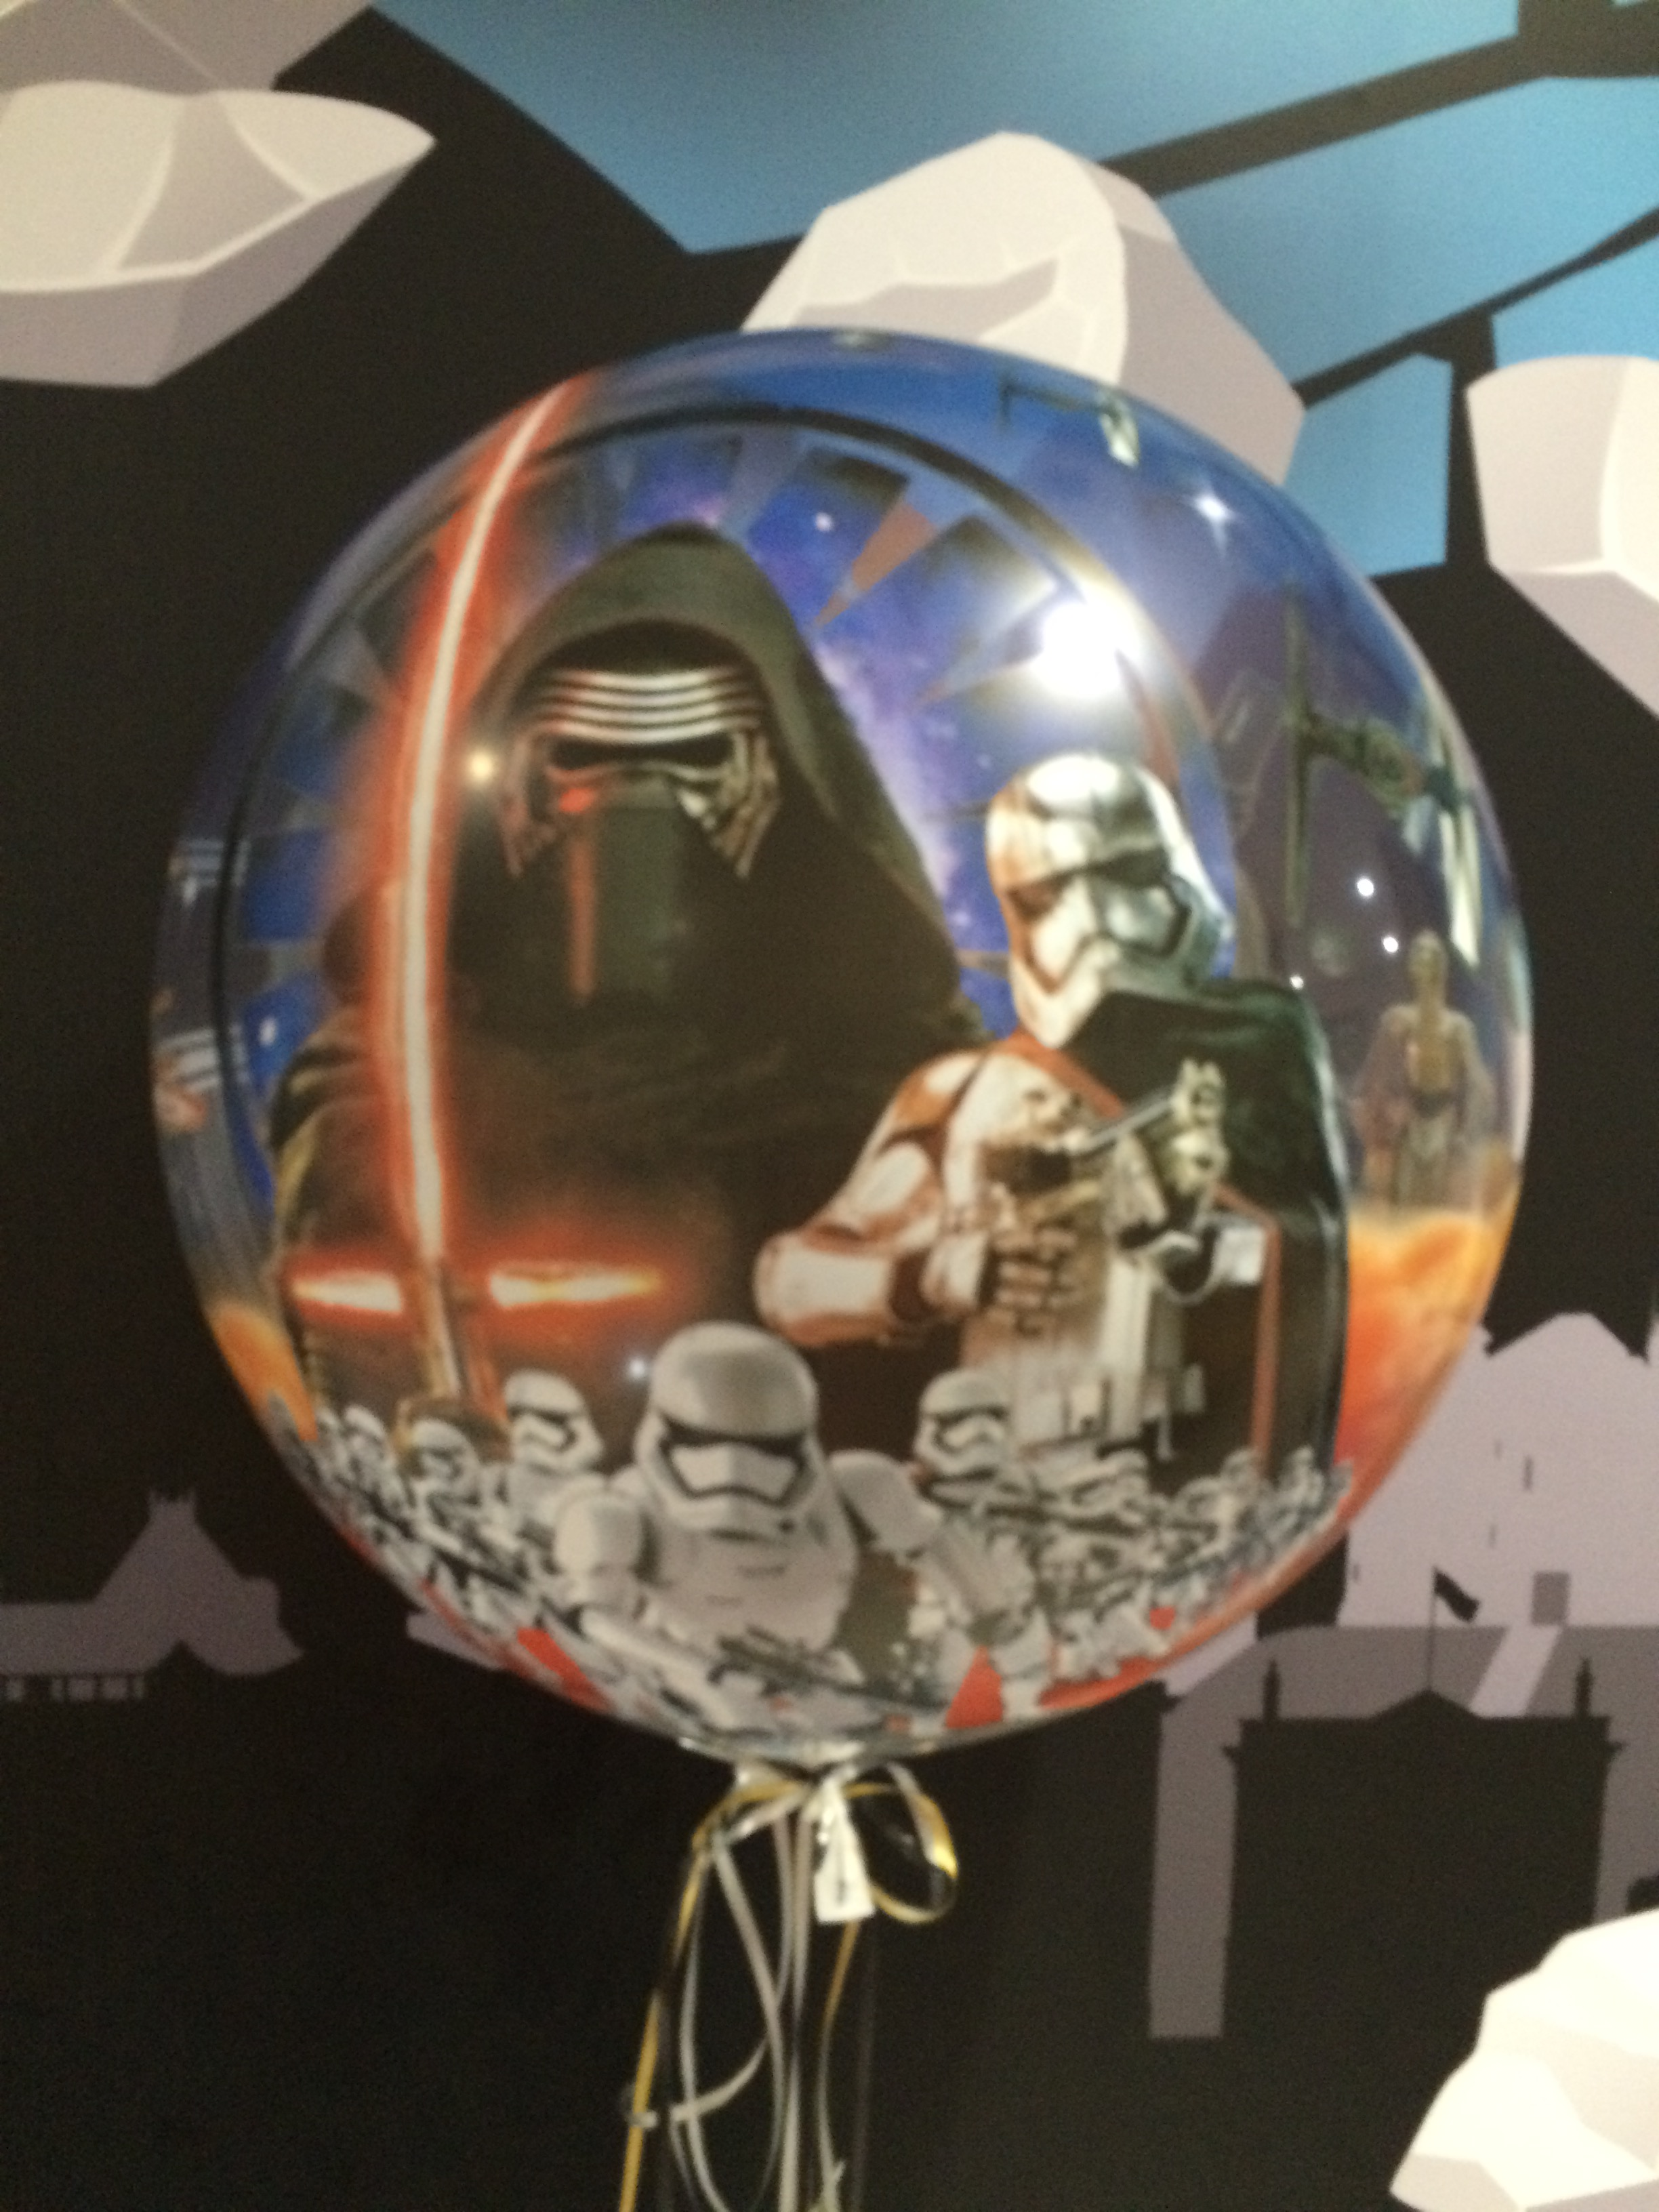 Starwars bubble balloon - the complete picture